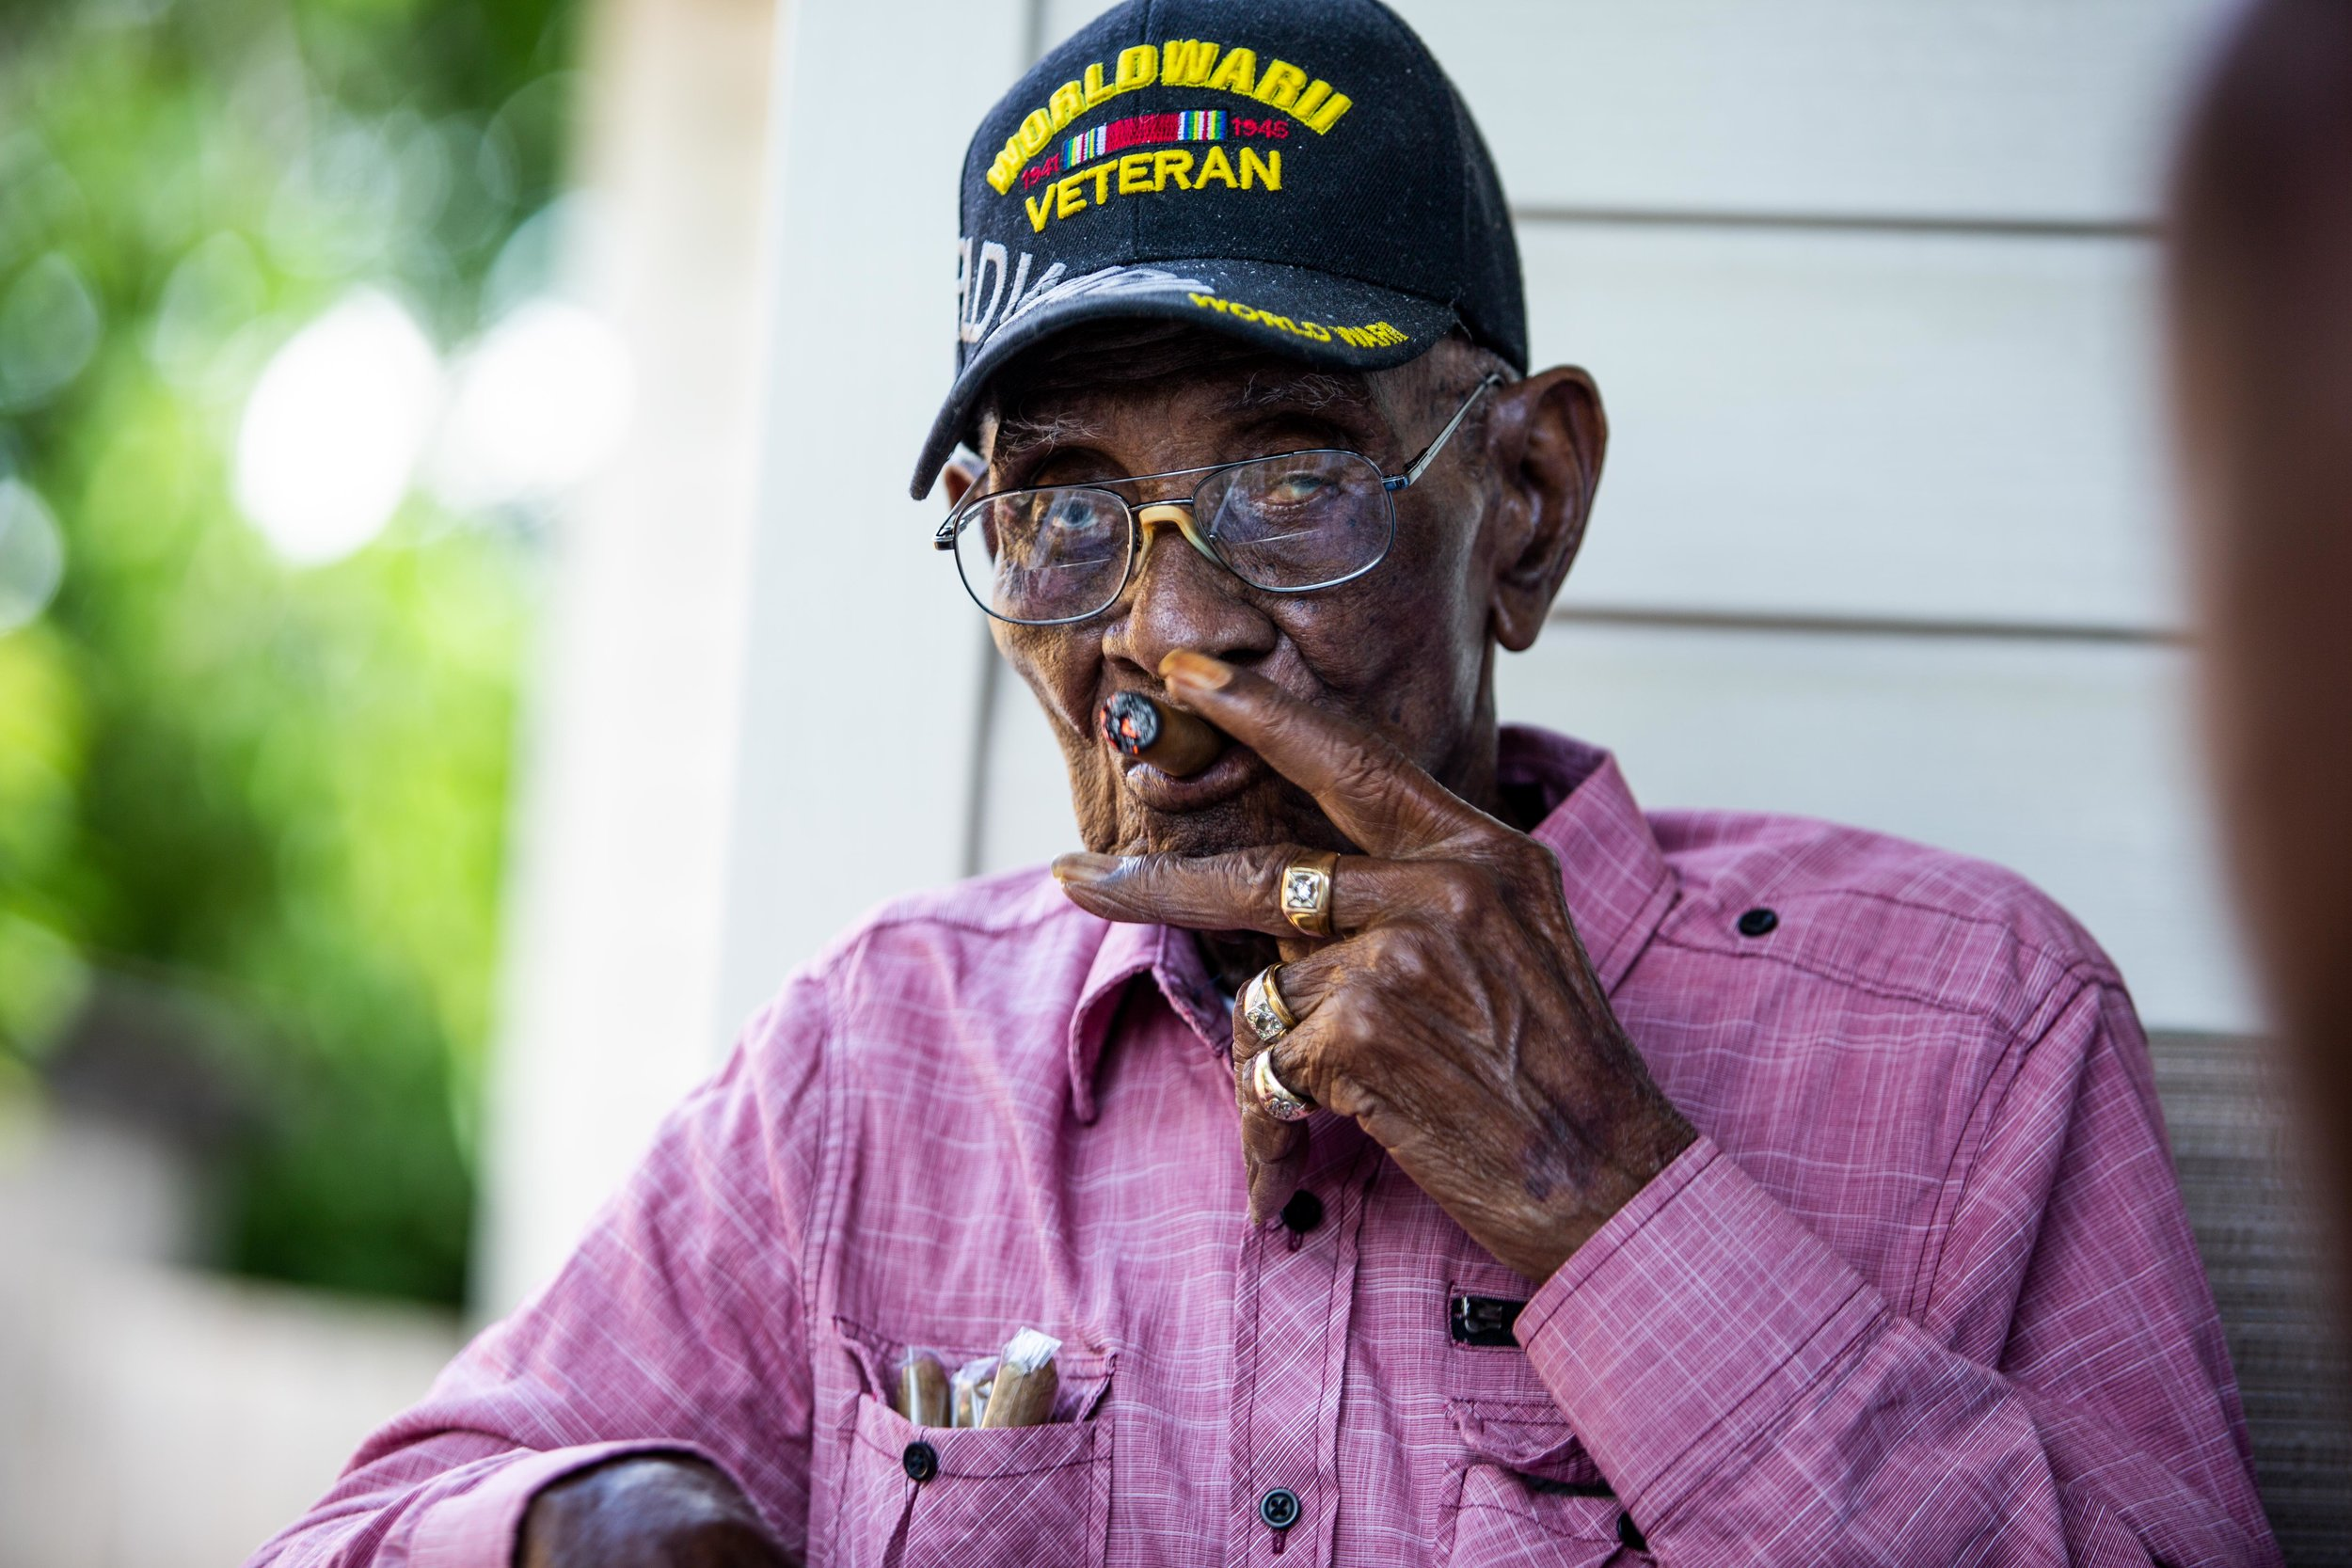 AUSTIN, TEXAS. May 11, 2018. Richard Overton, America's oldest living WWII veteran, smokes a cigar on the front porch of his East Austin home during a public party celebrating his 112th birthday. Montinique Monroe for KUT News